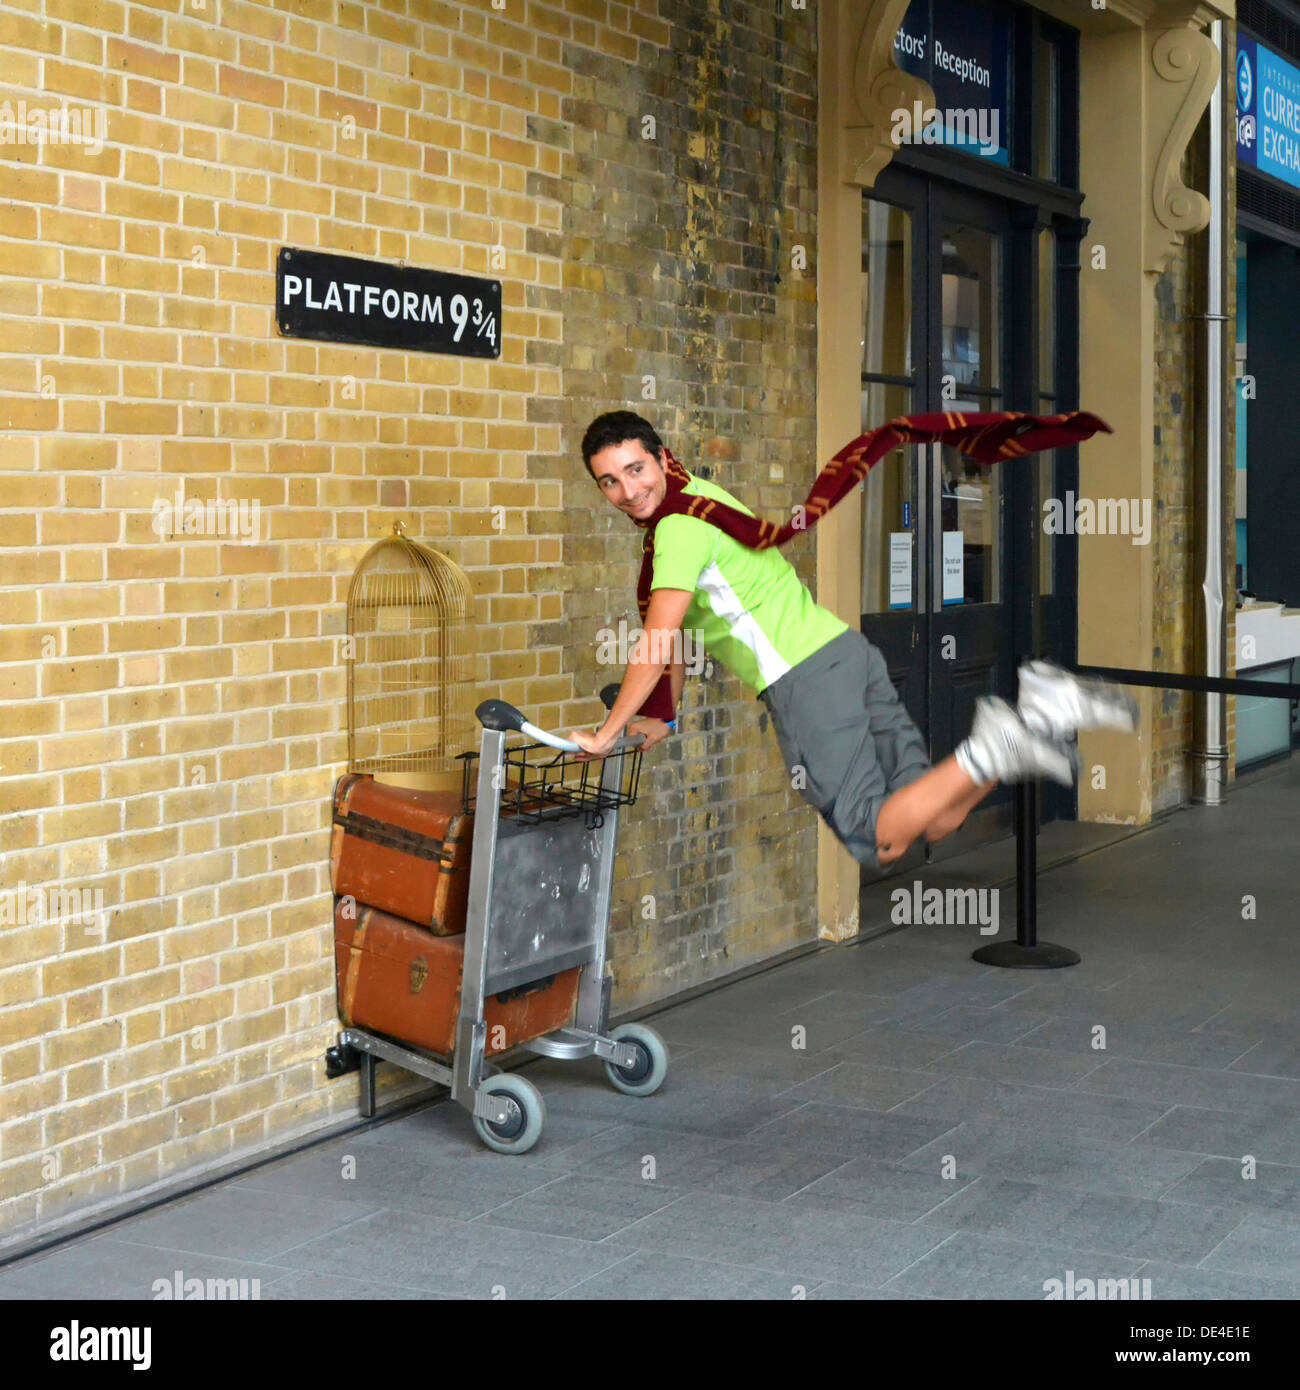 Harry Potter fan recreates pushing a trolley towards platform nine and three quarters from the film Kings Cross railway station London England UK - Stock Image